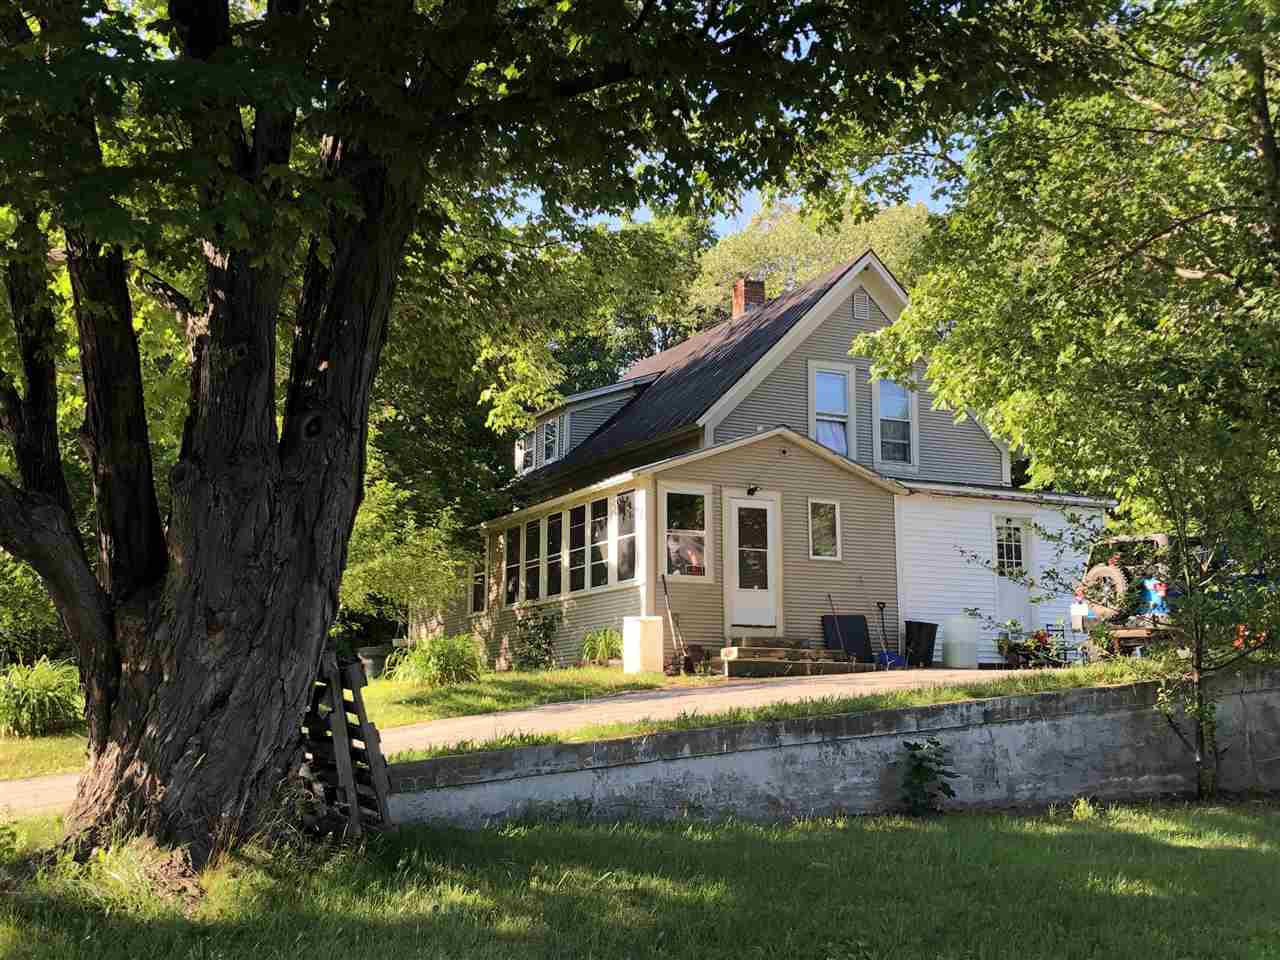 Village of Sanbornville in Town of Wakefield NH Home for sale $$179,900 $137 per sq.ft.